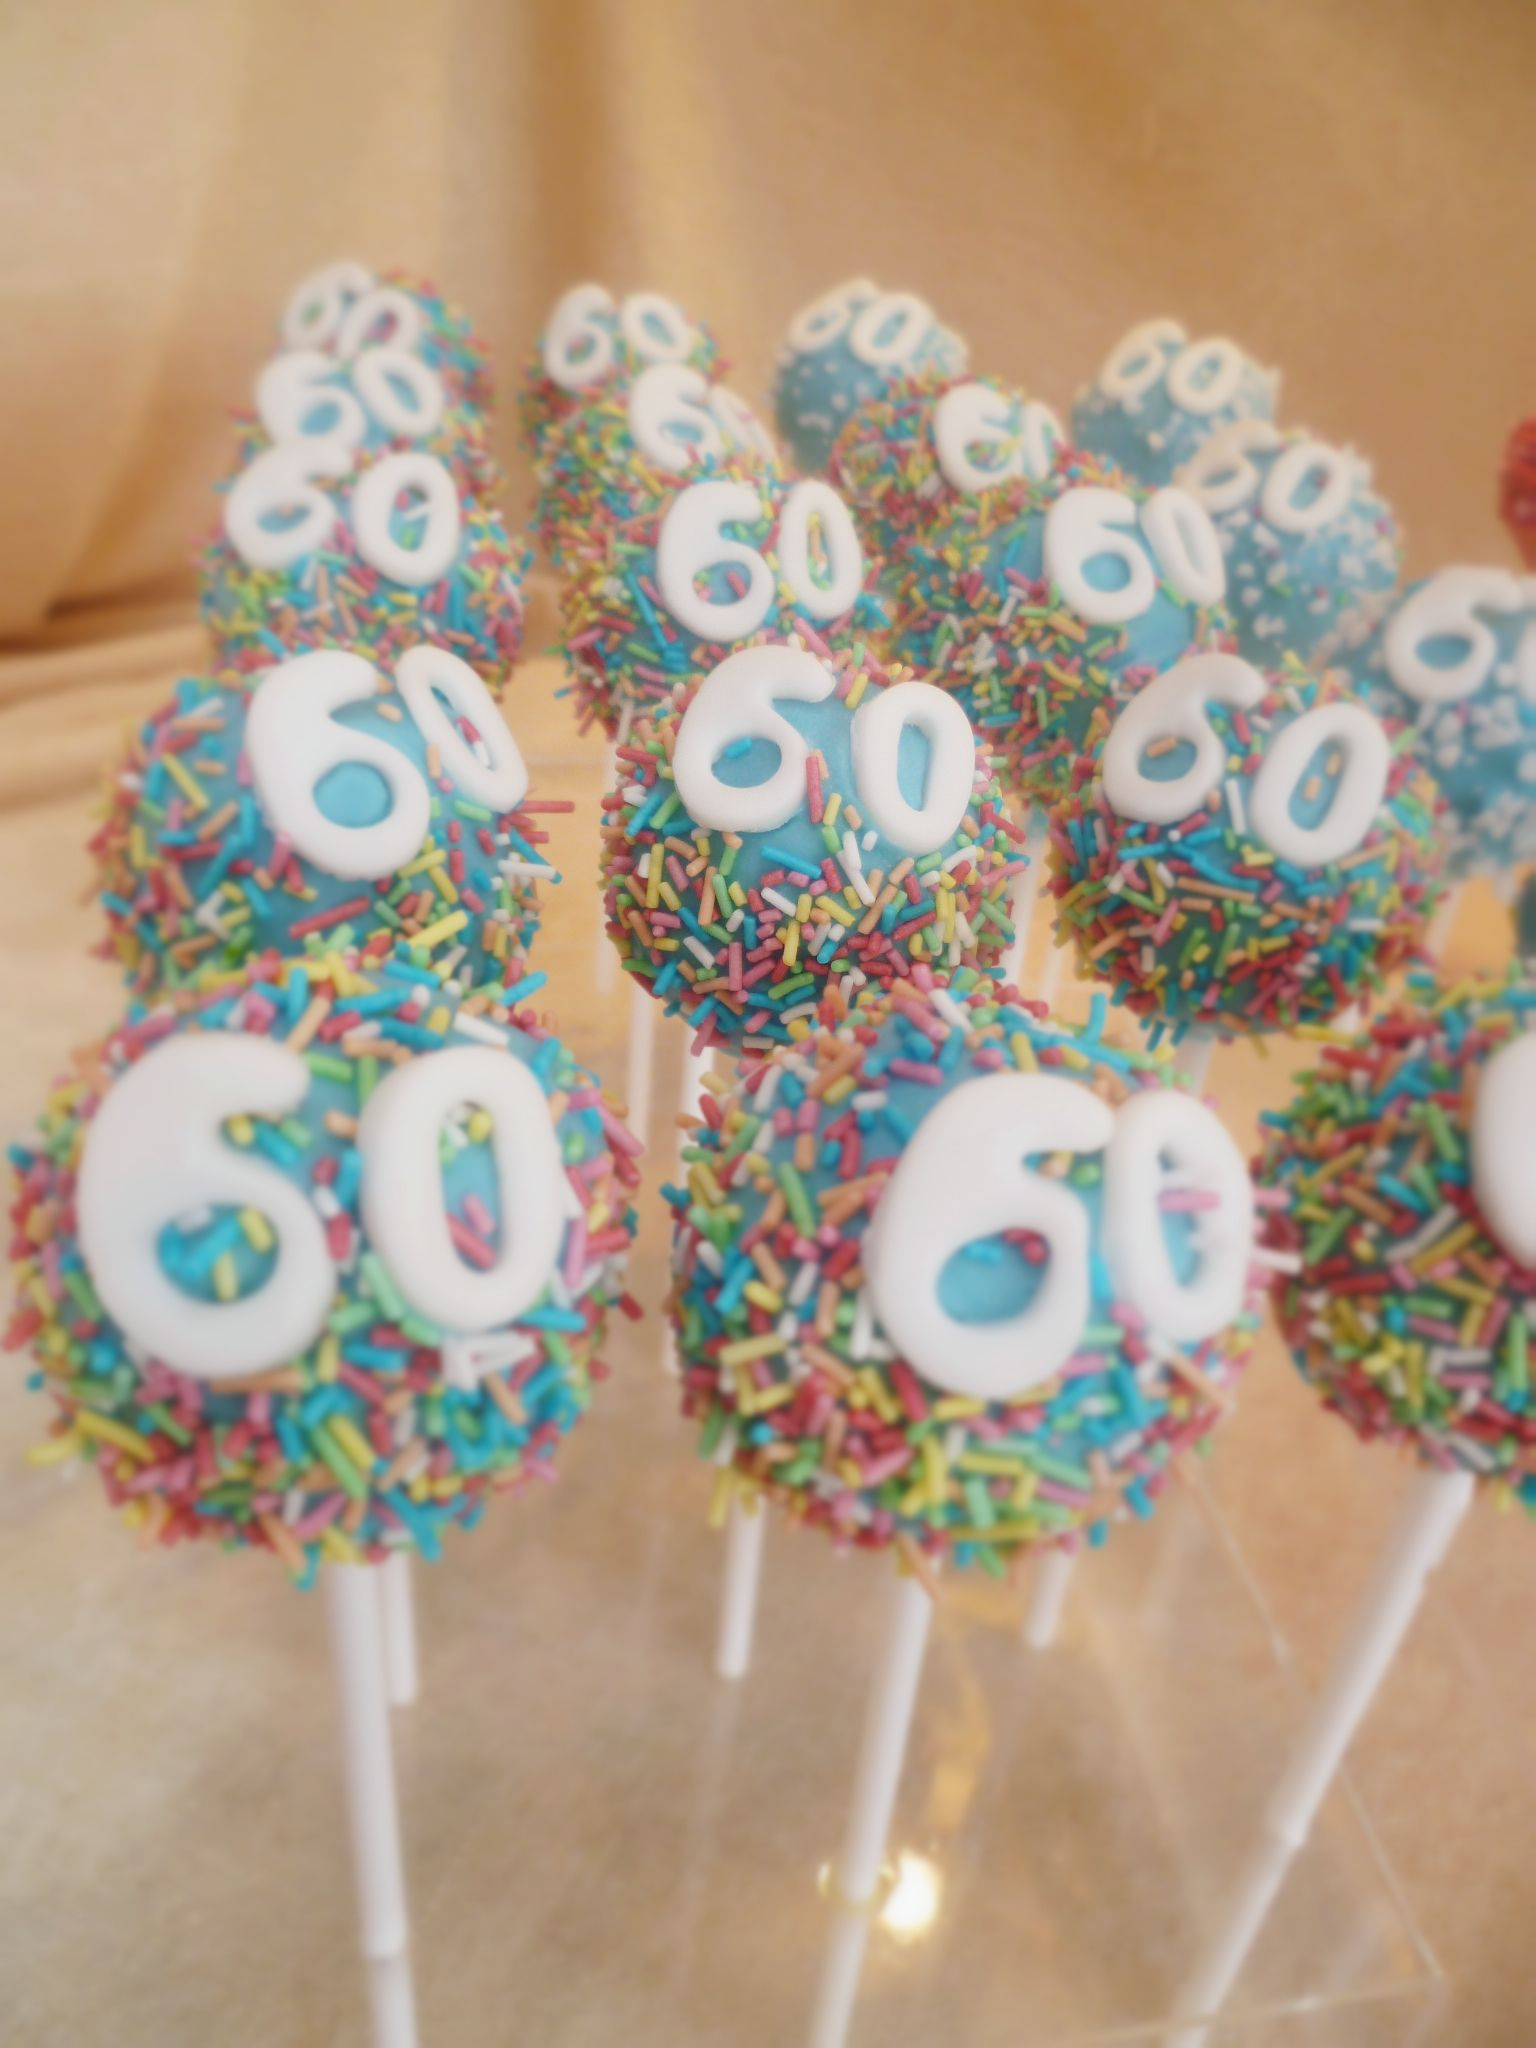 60th Birthday Cake Pops Make That Birthday A Bit More